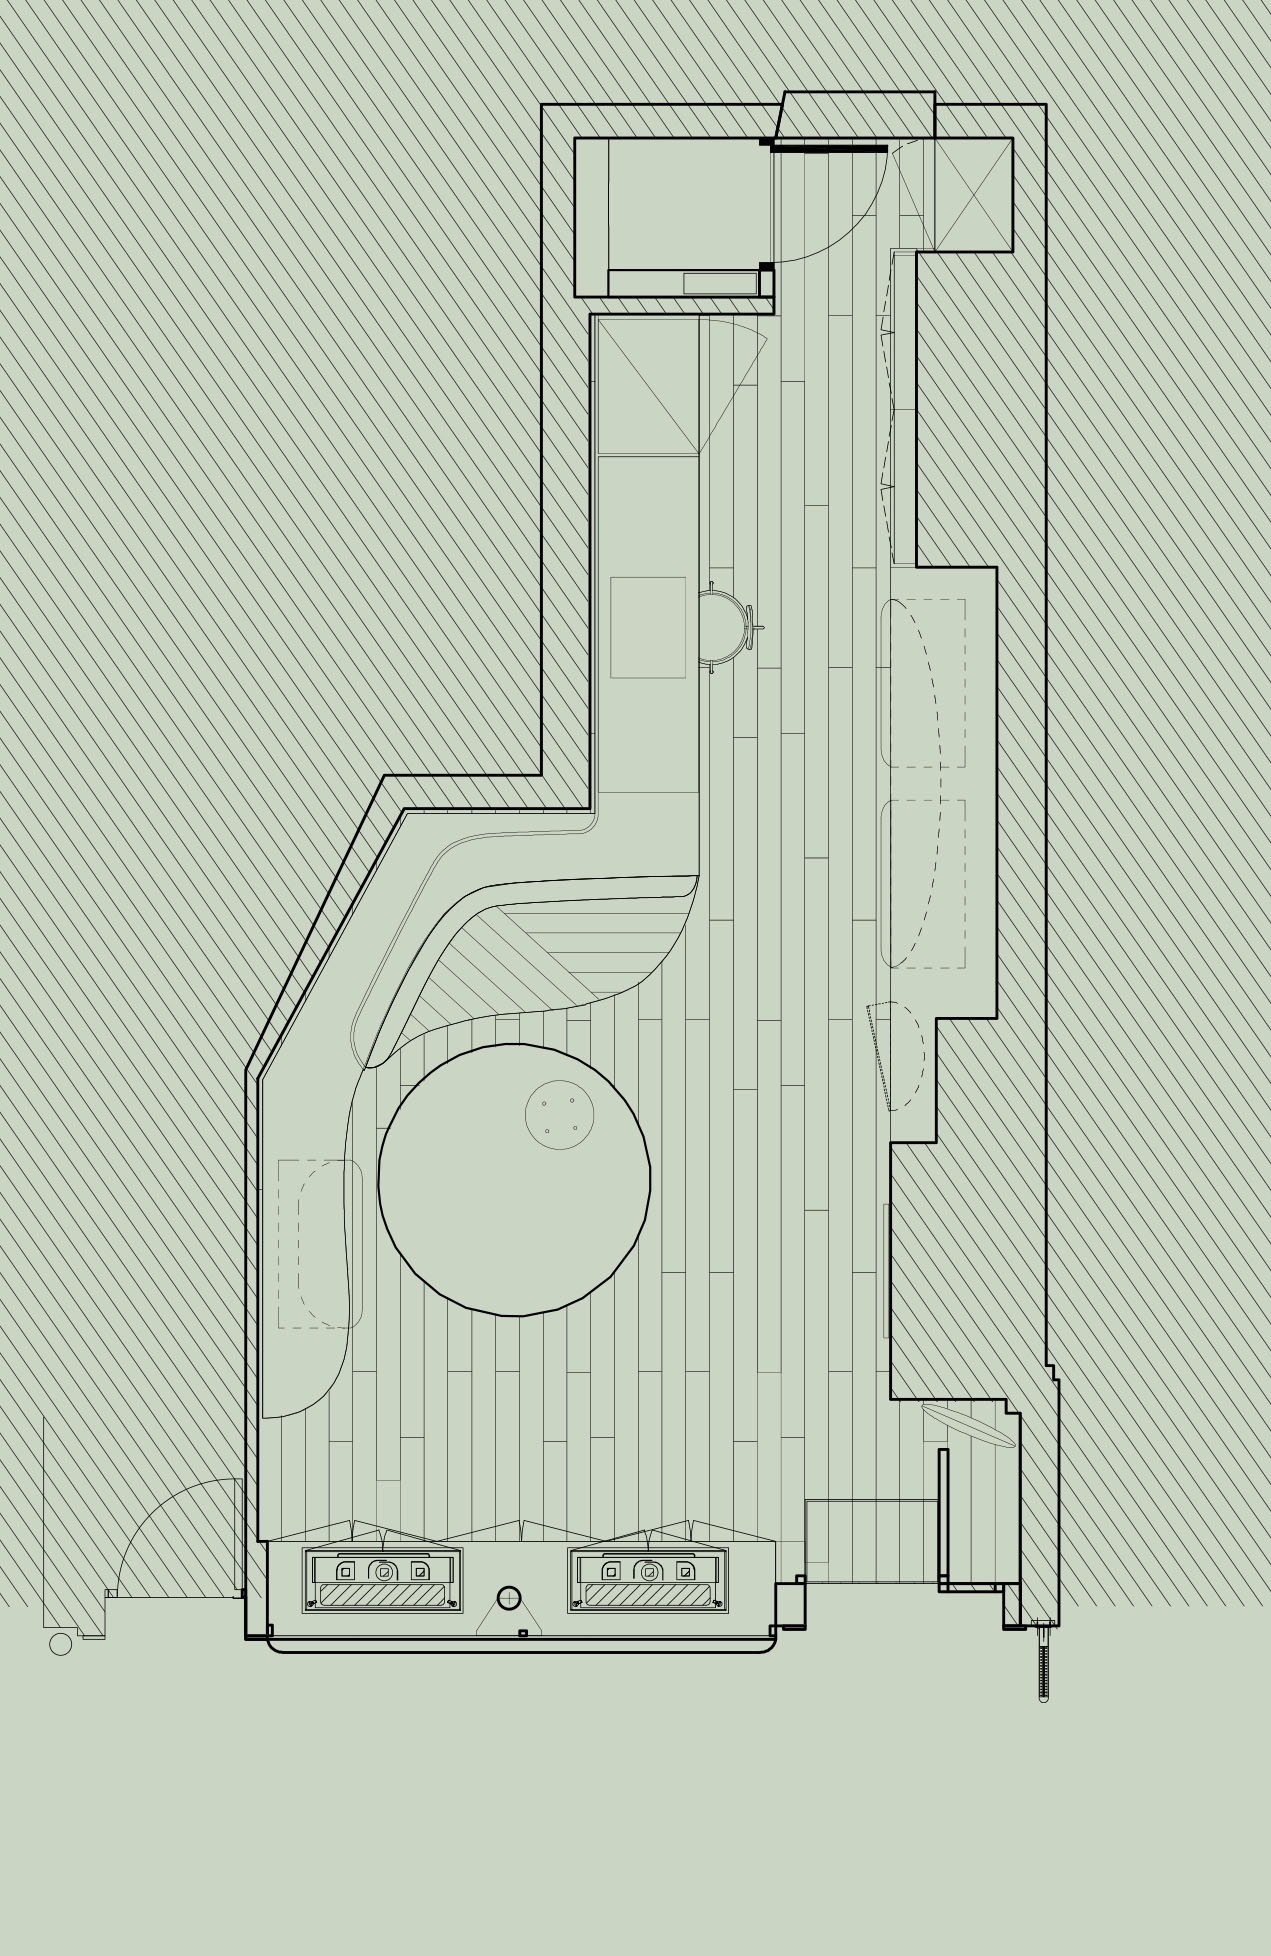 ForestGiaconia_MarchLab_LondonStore_Plans01.jpg